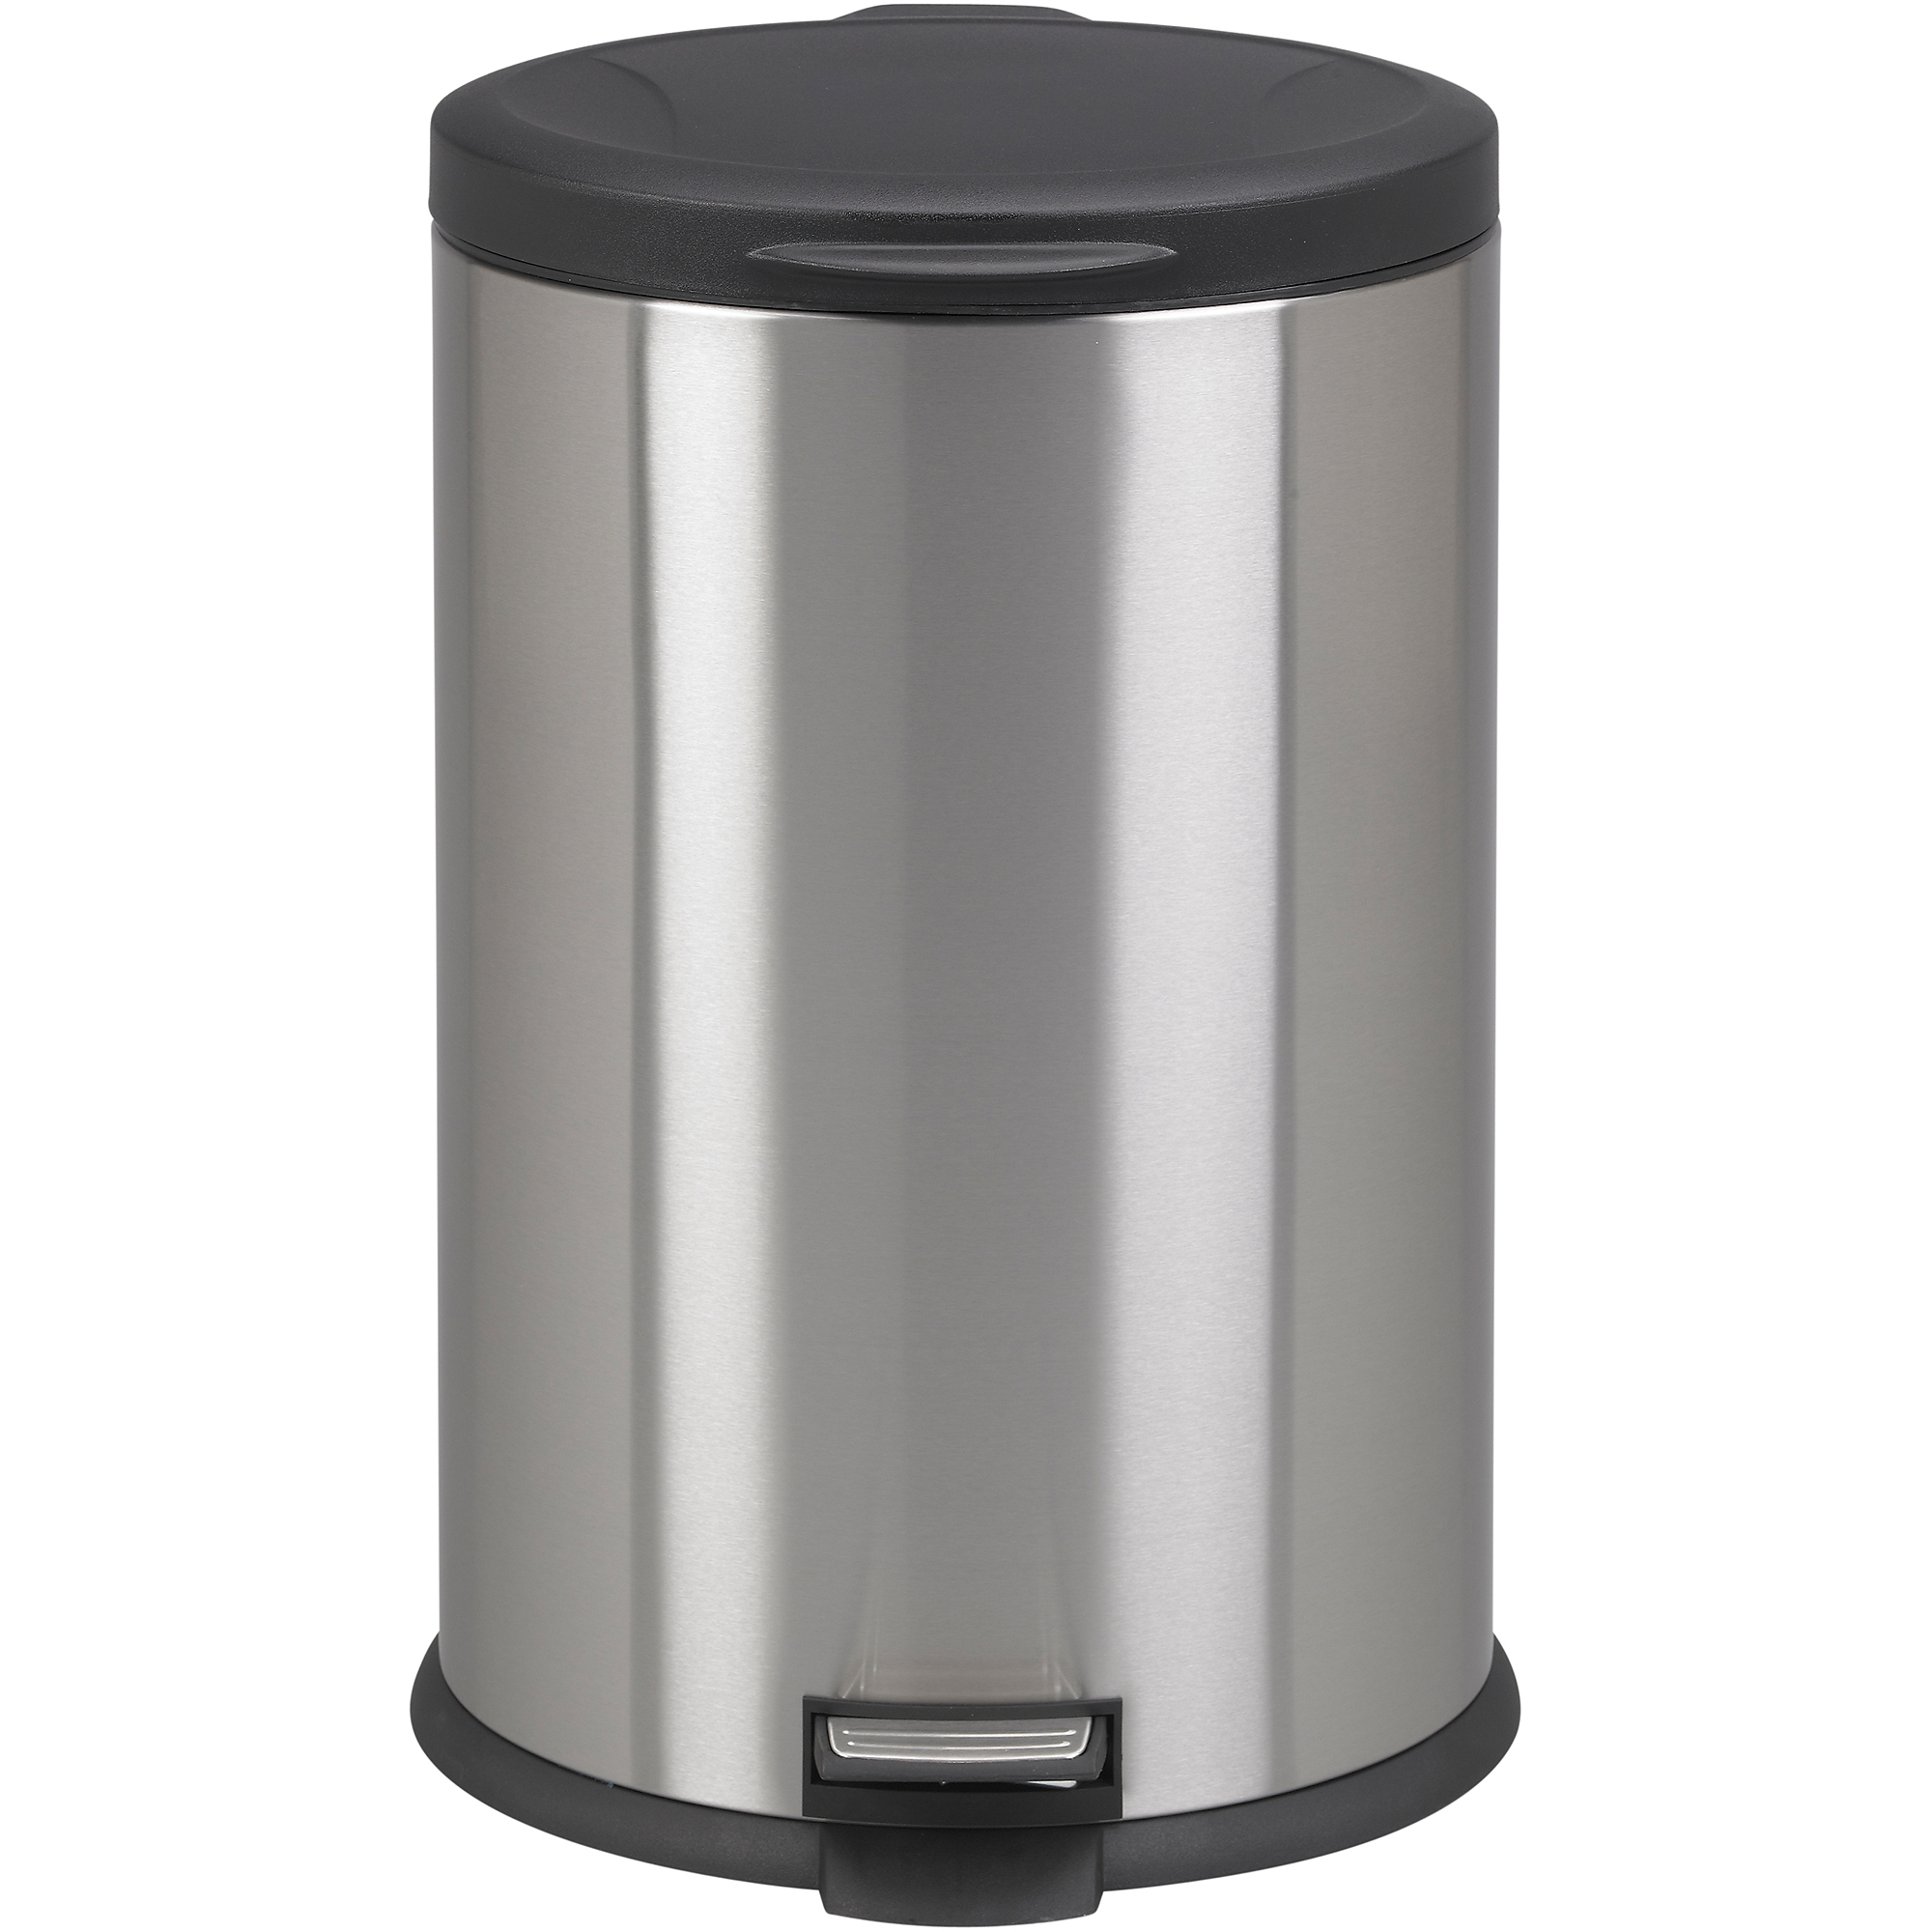 Better homes garden 10 5 gallon oval stainless steel - Better homes and gardens trash can ...